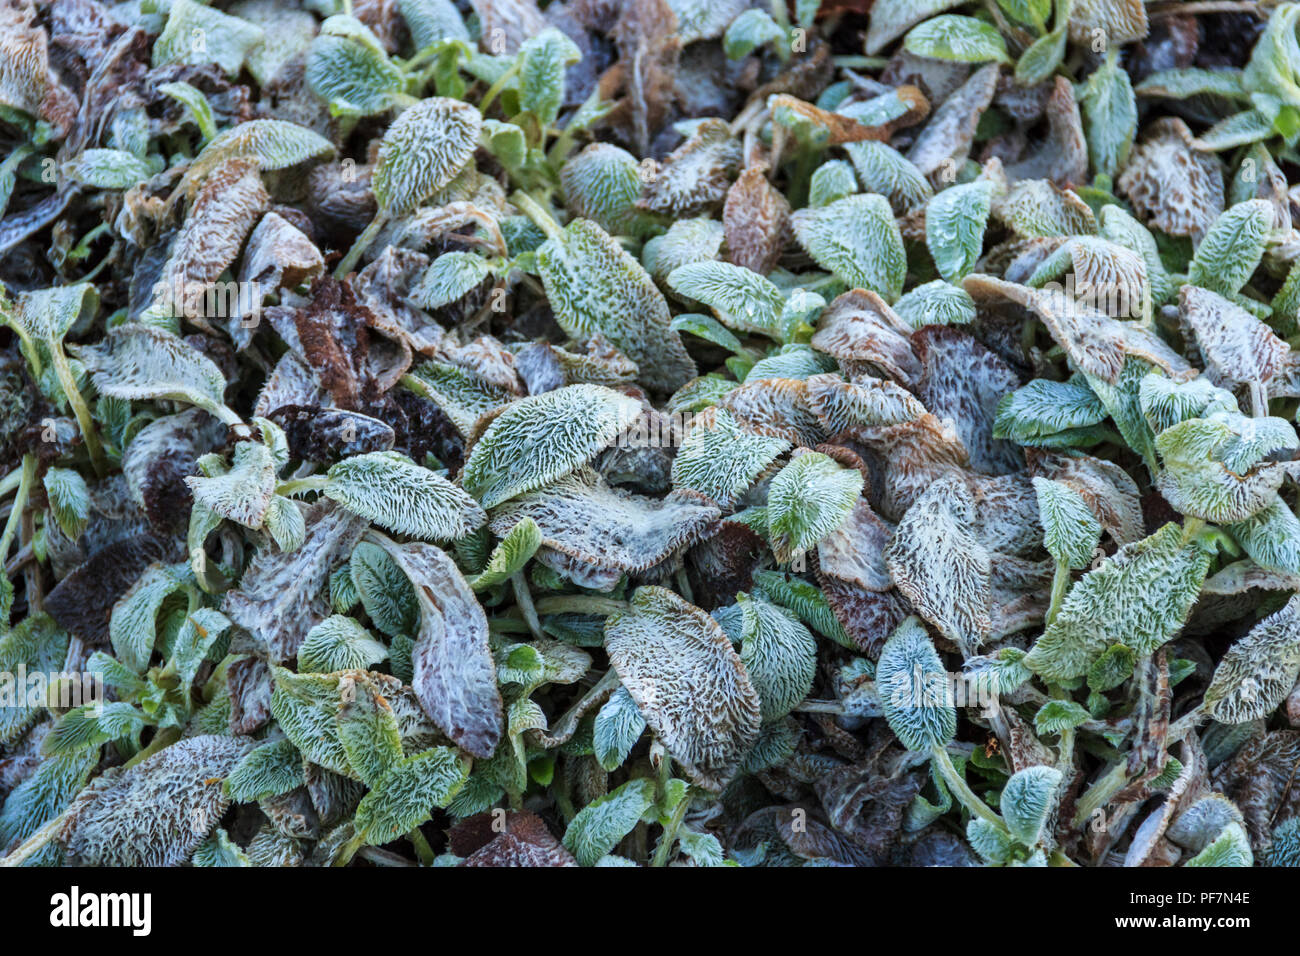 Floral background, frost on hairy blue-green plant leaves - Stock Image